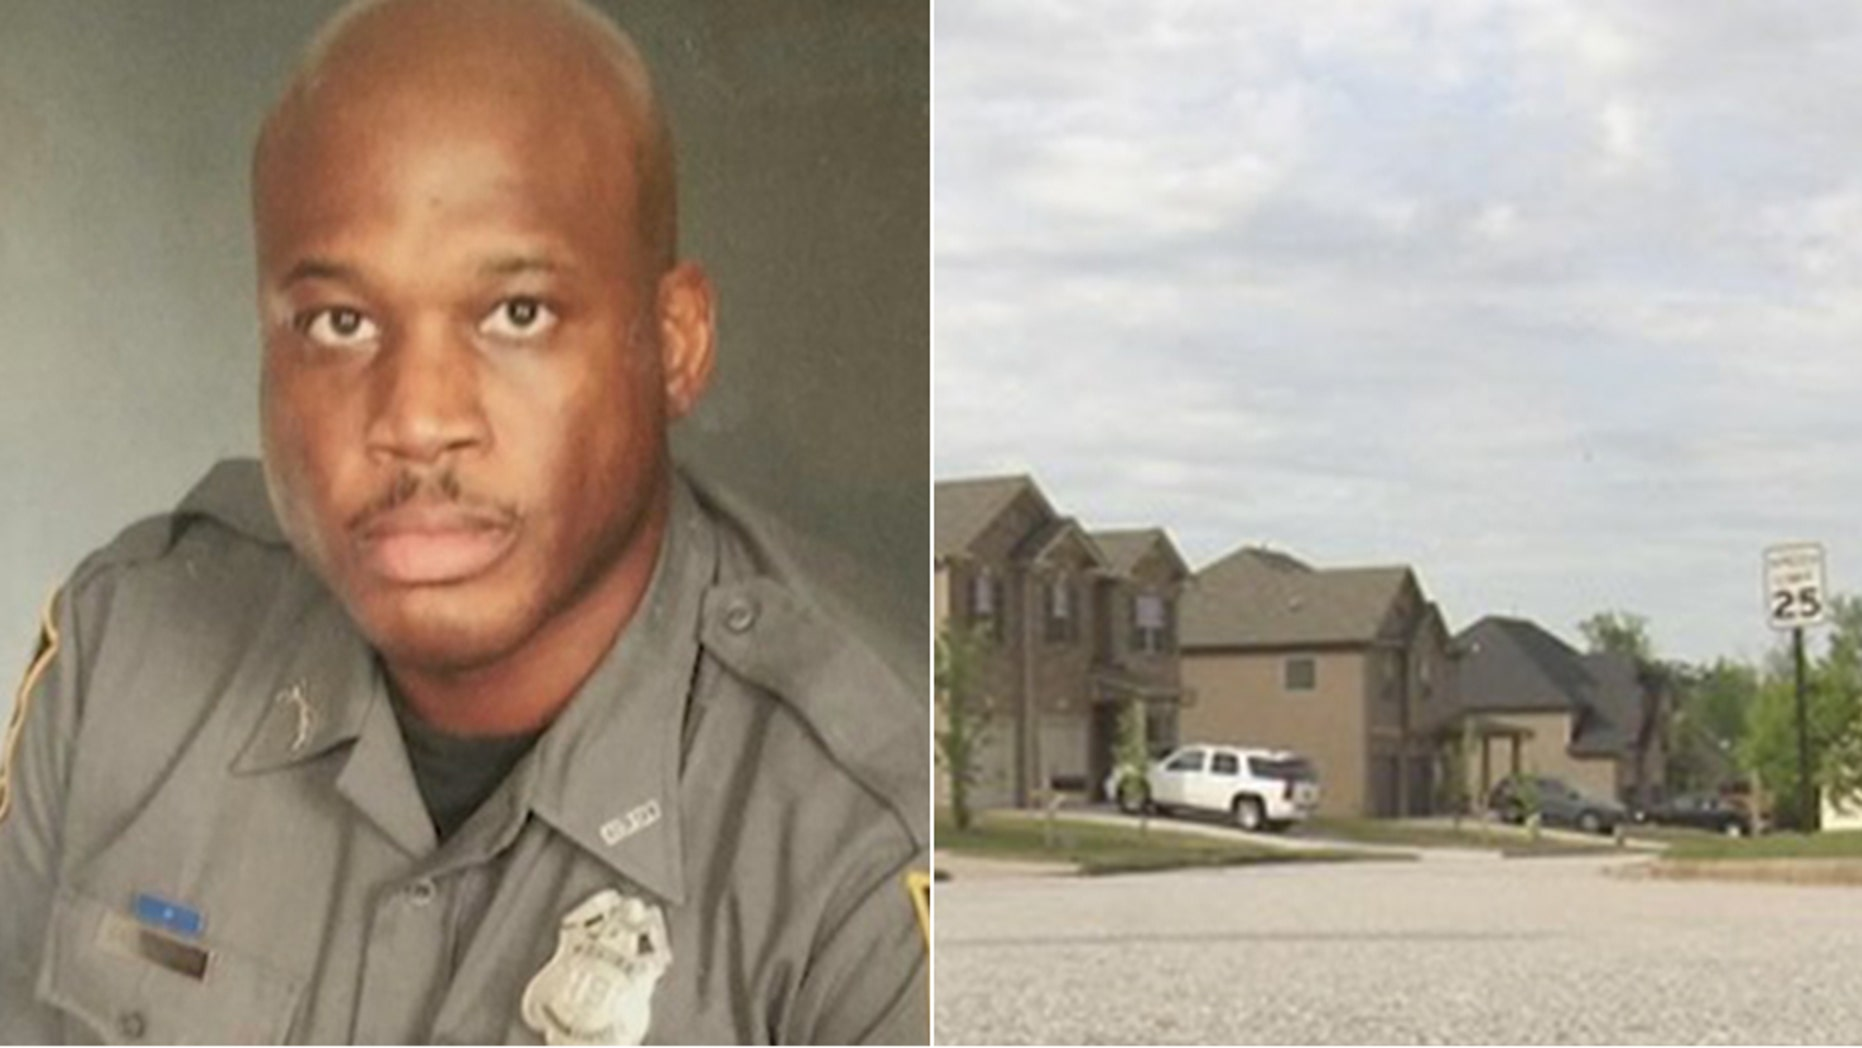 Carlos Wicker, a former DeKalb County police officer, said he fired his gun at a would-be robber outside his home.